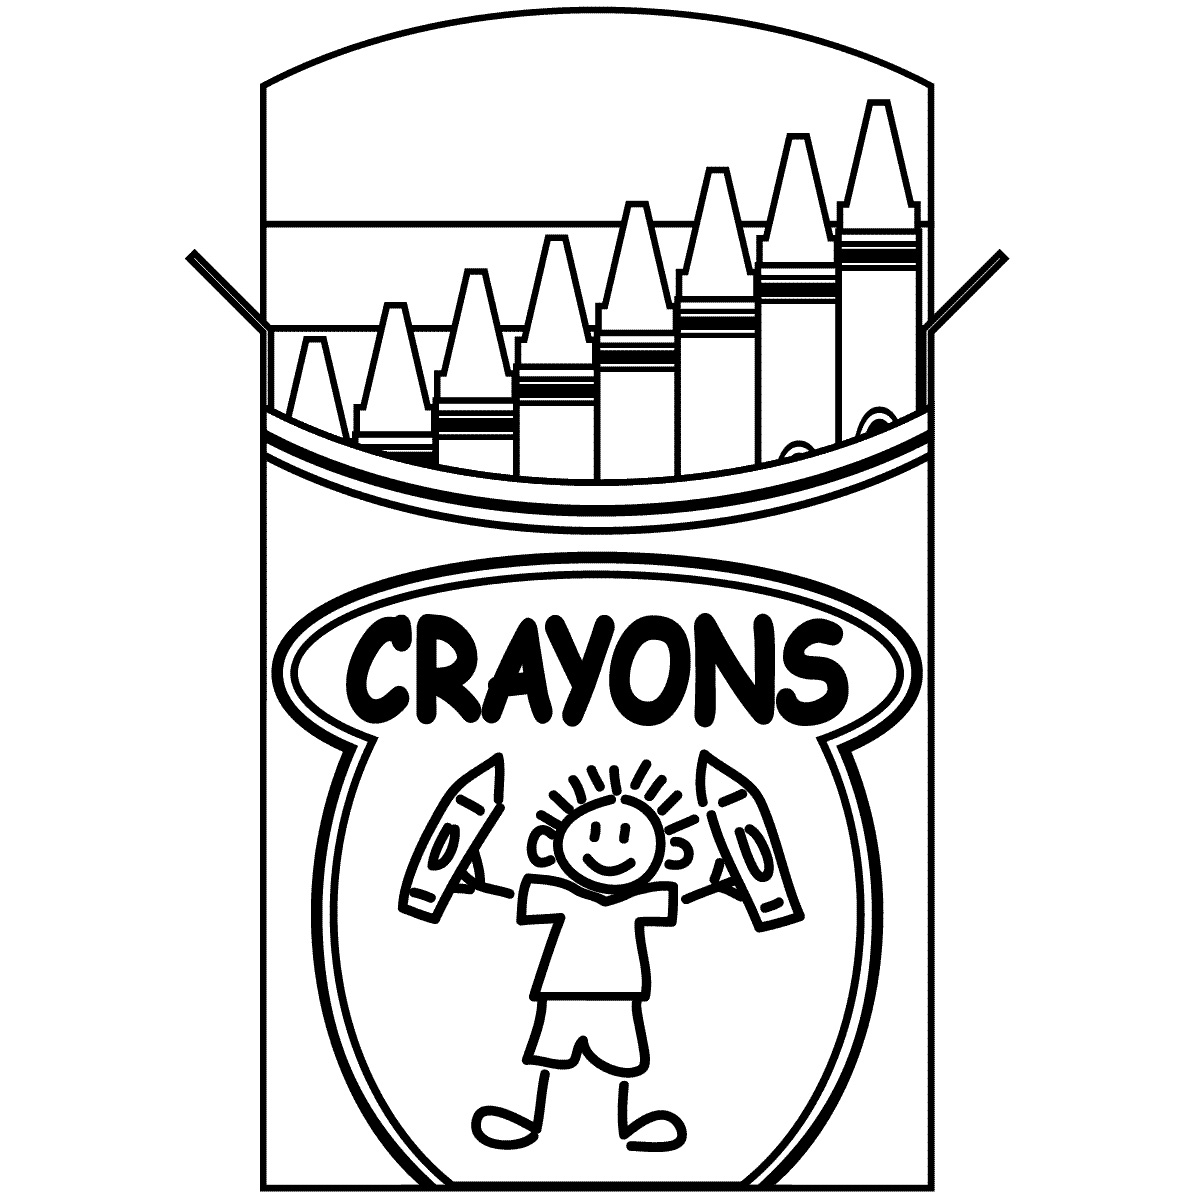 coloring with crayons download crayon coloring for free designlooter 2020 coloring crayons with